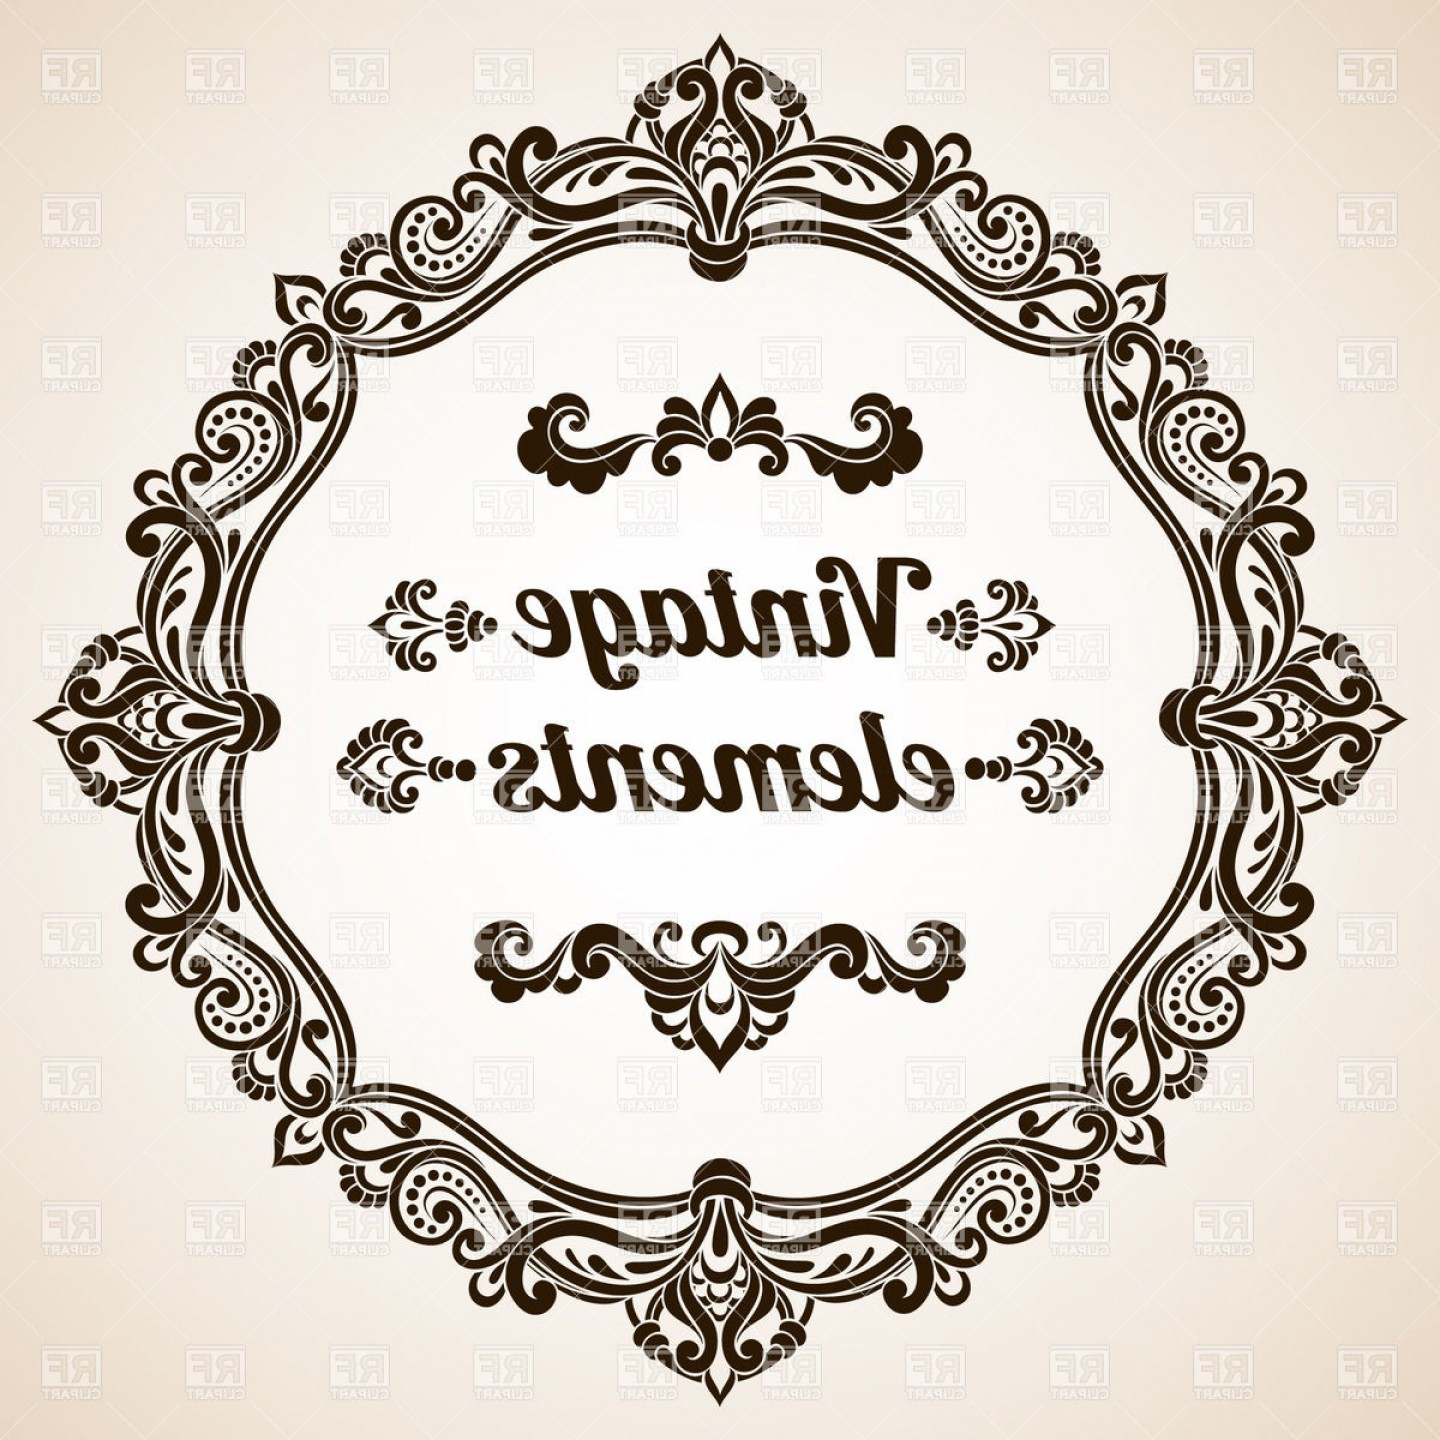 Vector Ornate Vintage Frame Blank: Round Vintage Frame With Ornate Border Vector Clipart